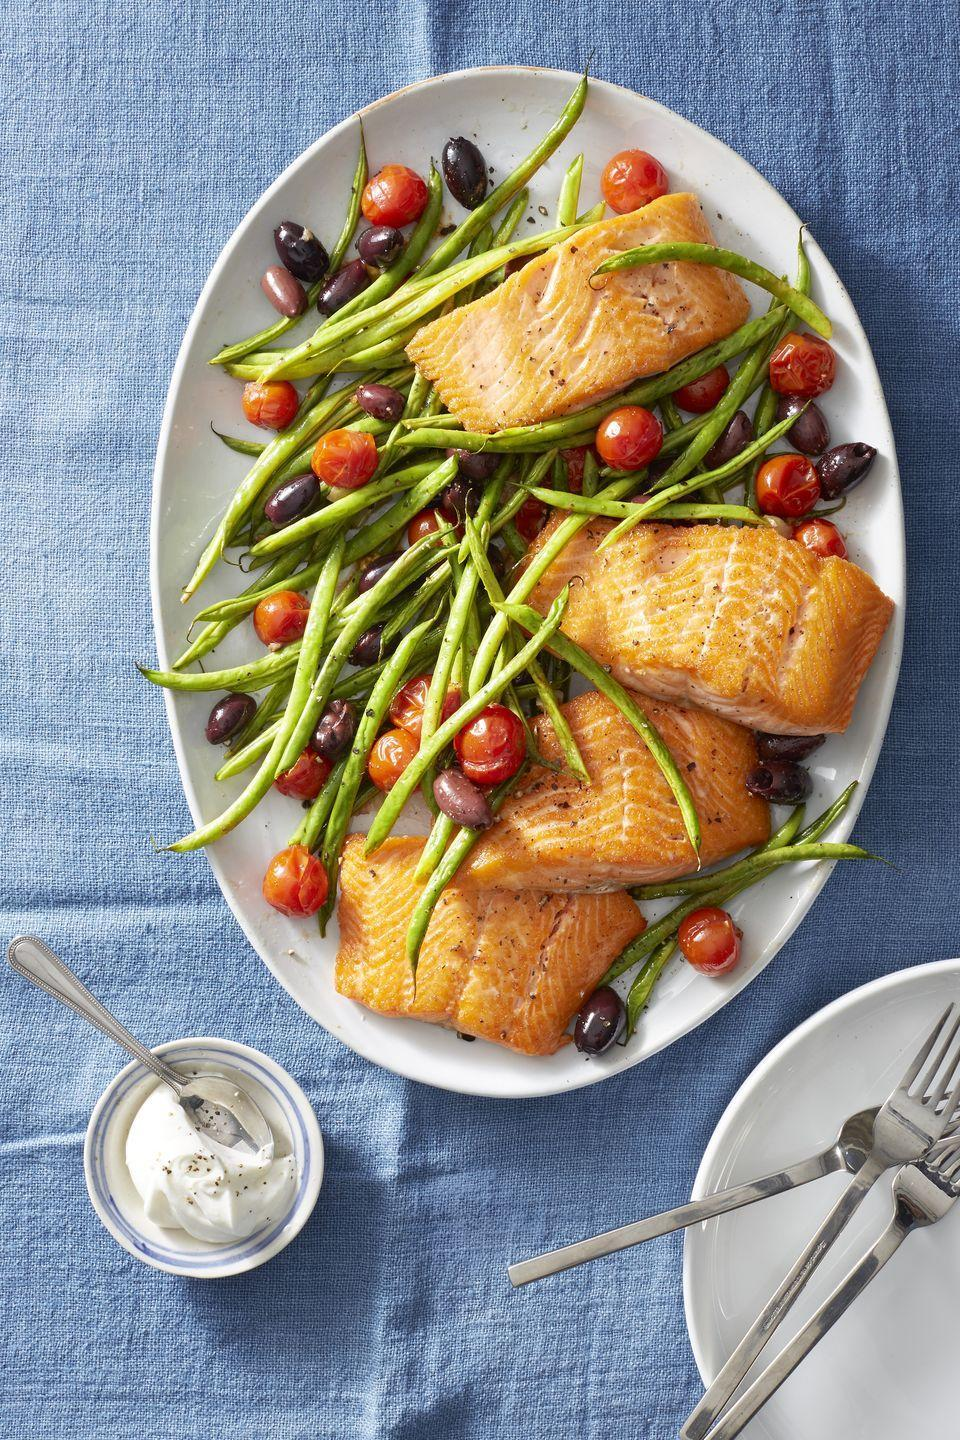 """<p>Believe it or not, there are two fishes hiding in this sea of spring veggies: Salmon <em>and</em> anchovies. This 300-calorie dinner is ready in just 20 minutes. <br></p><p><a href=""""https://www.goodhousekeeping.com/food-recipes/easy/a22749664/roasted-salmon-with-green-beans-and-tomatoes-recipe/"""" rel=""""nofollow noopener"""" target=""""_blank"""" data-ylk=""""slk:Get the recipe for Roasted Salmon With Green Beans and Tomatoes »"""" class=""""link rapid-noclick-resp""""><em>Get the recipe for Roasted Salmon With Green Beans and Tomatoes »</em></a></p>"""